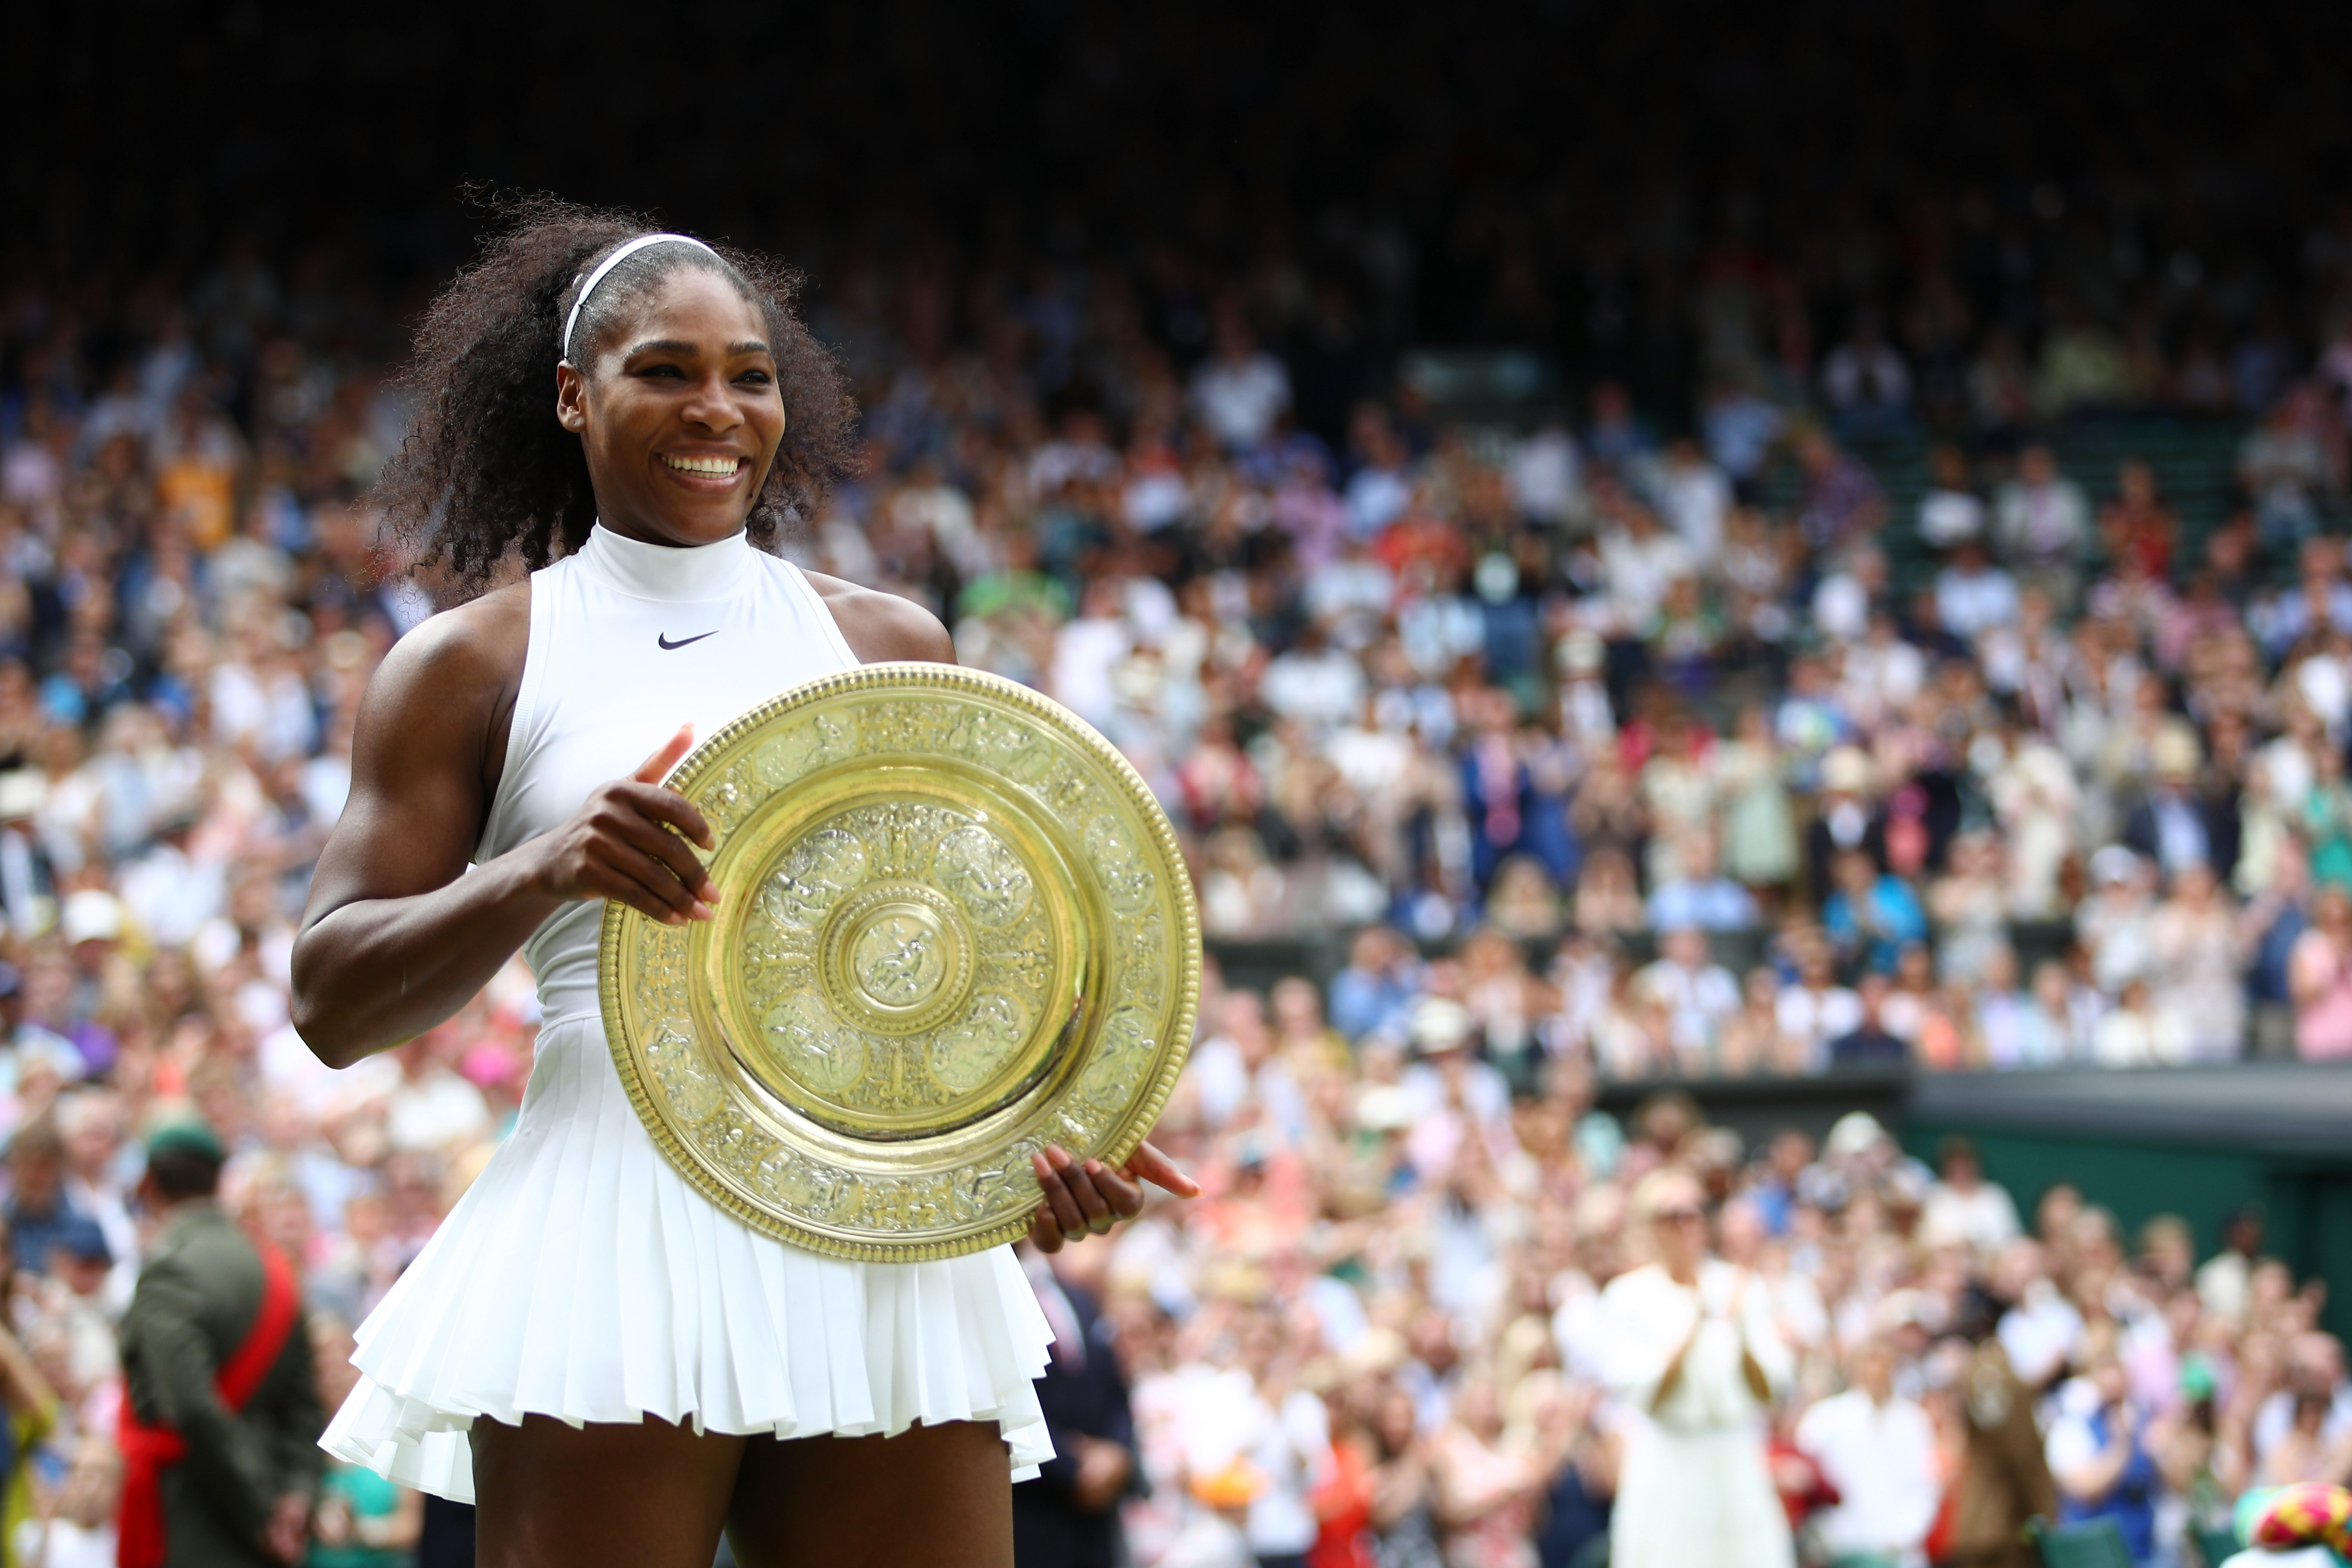 Serena Williams poses following her victory at Wimbledon.